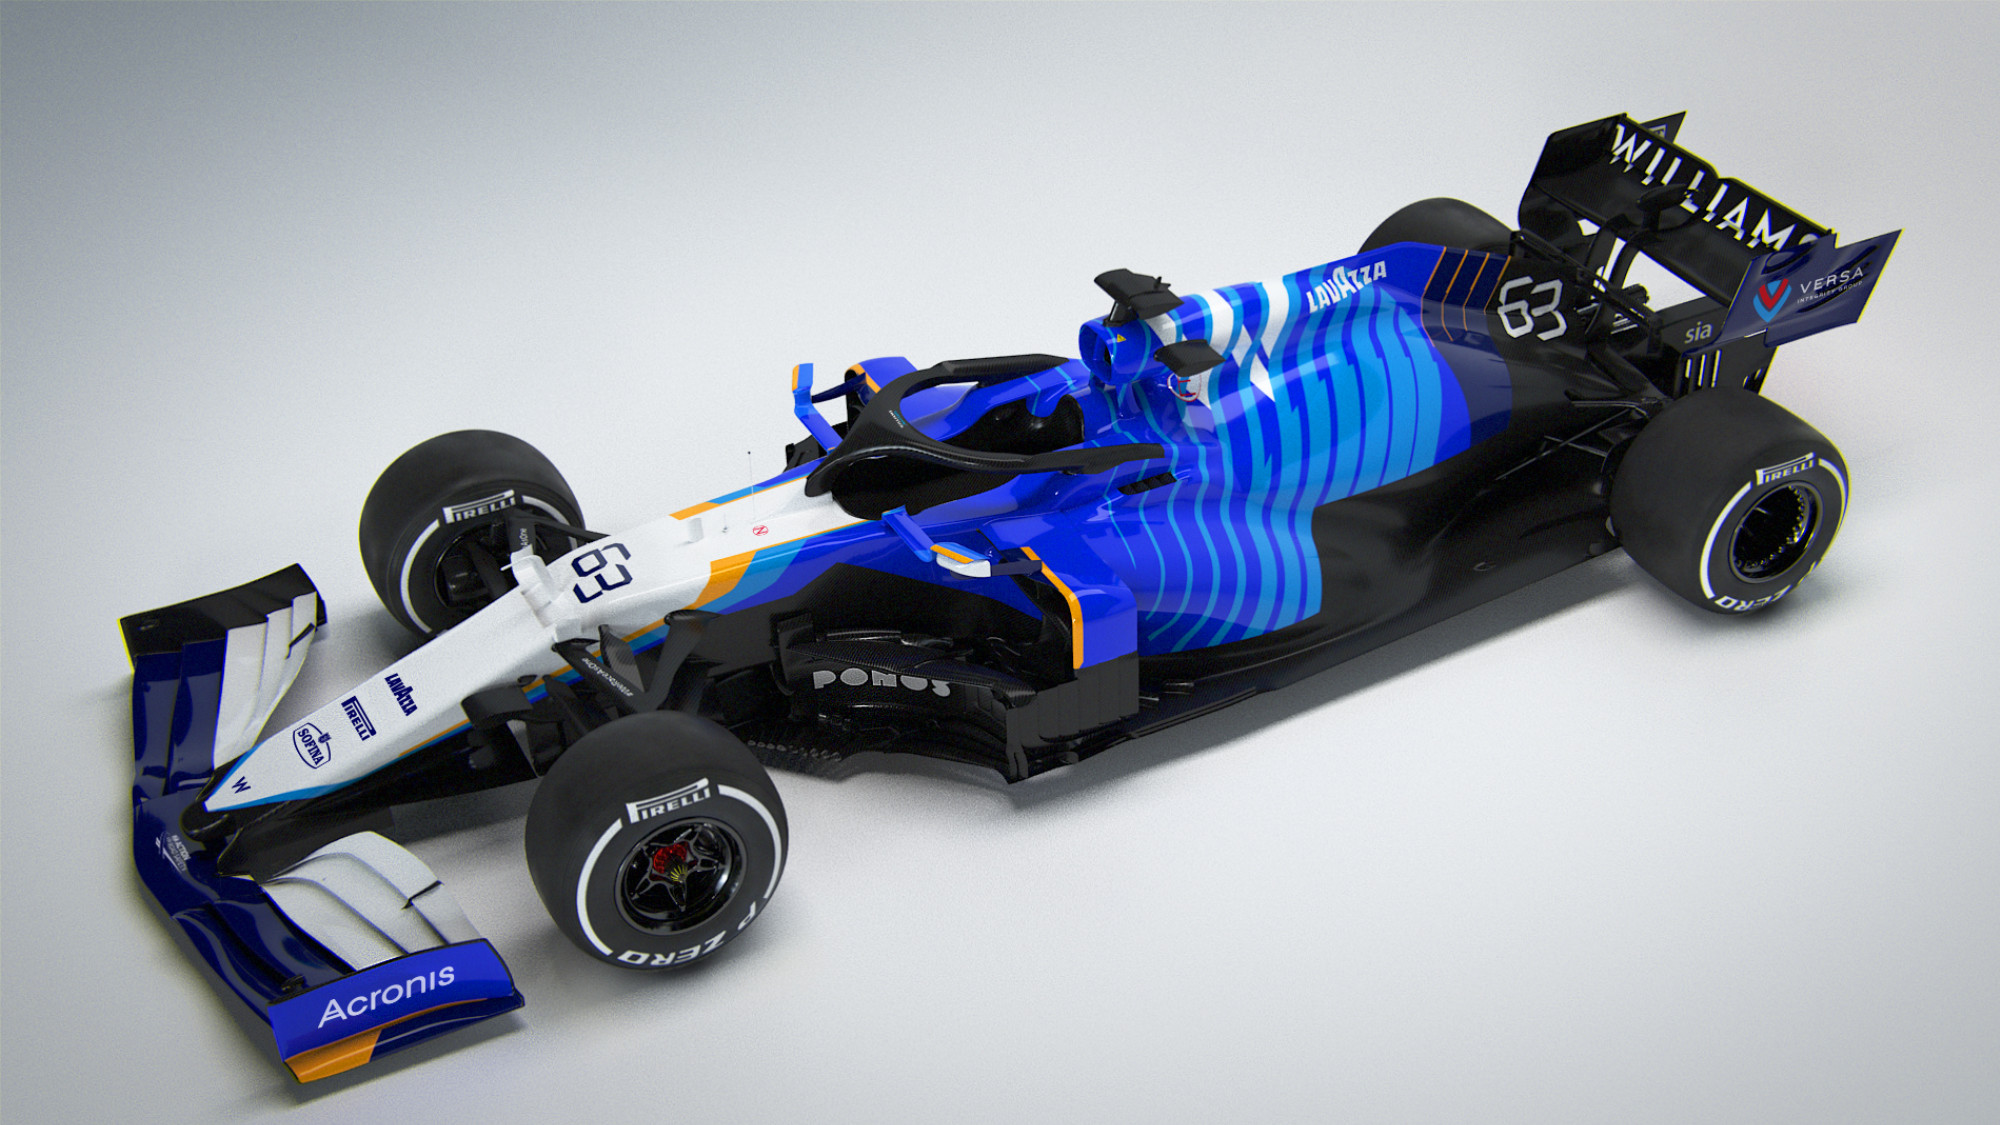 F1 2021 car and livery launches: team reveal dates and times